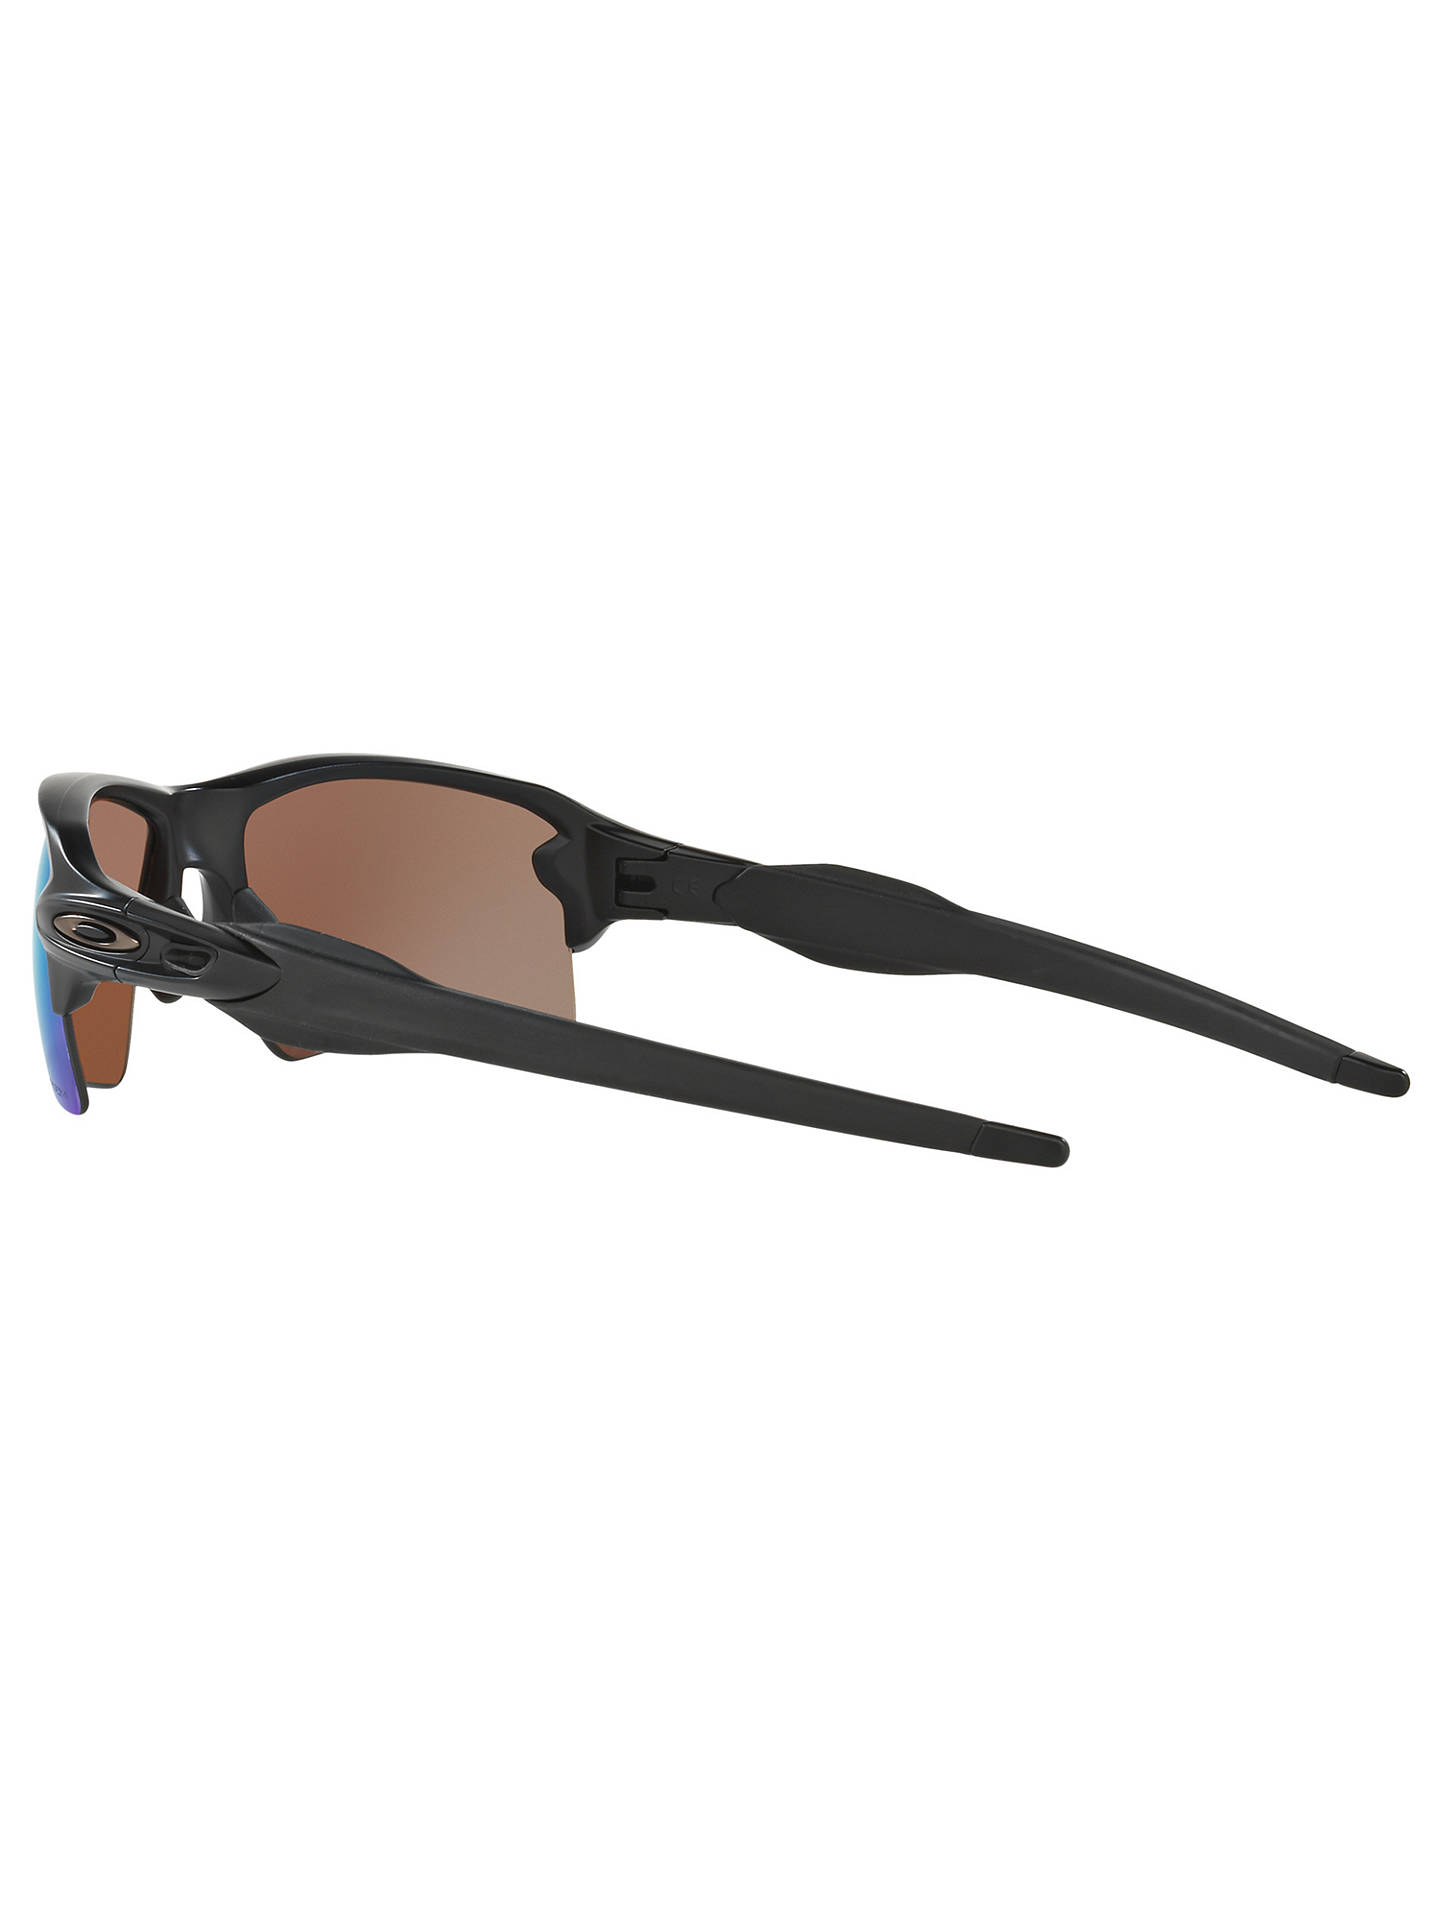 BuyOakley OO9188 Men's Flak 2.0 XL Prizm™ Polarised Rectangular Sunglasses, Matte Black/Deep Water Online at johnlewis.com